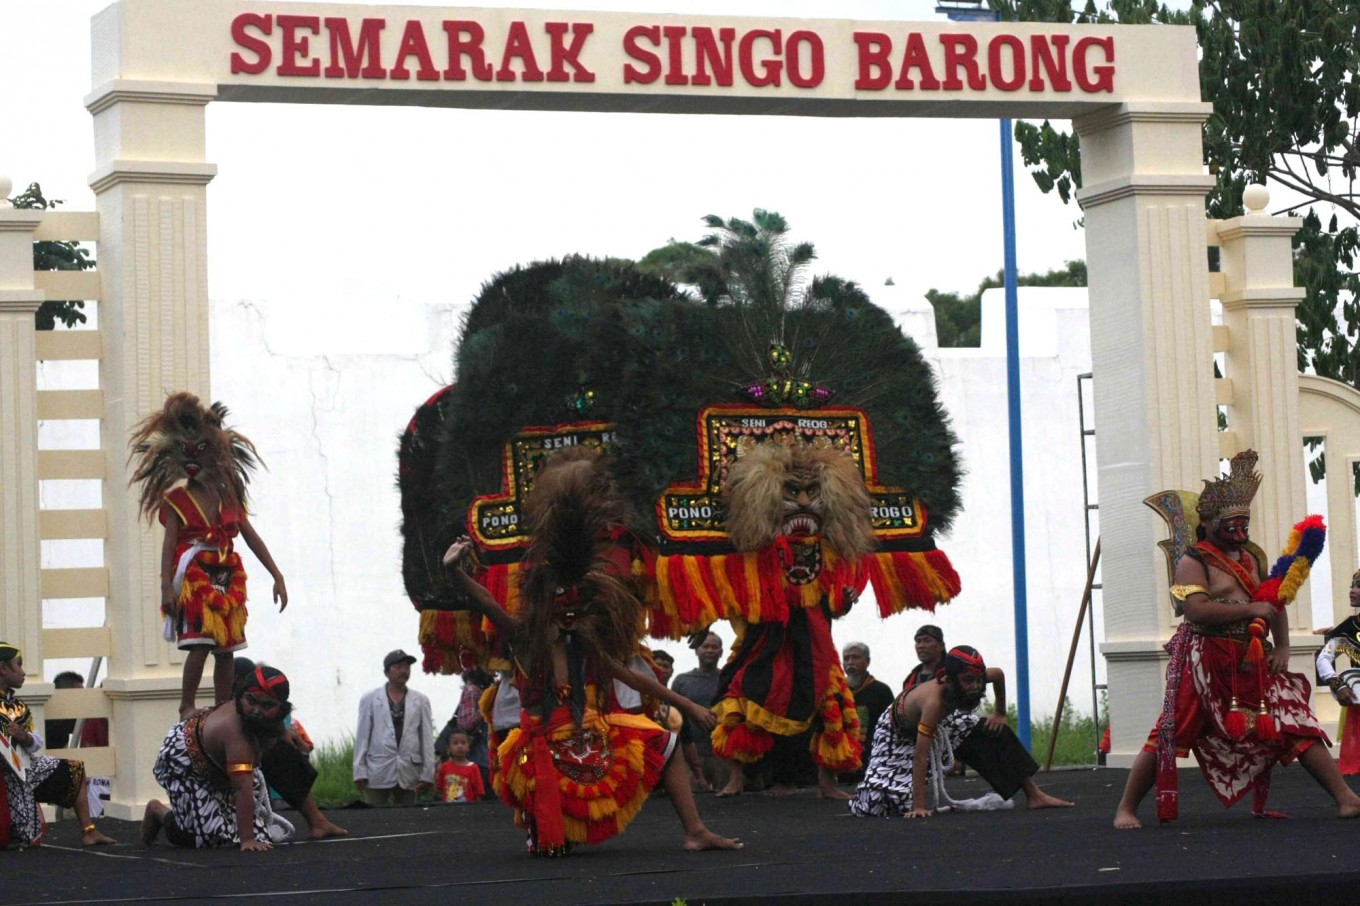 Grand entrance: Children take part in the reog performance. JP/ Maksum Nur Fauzan